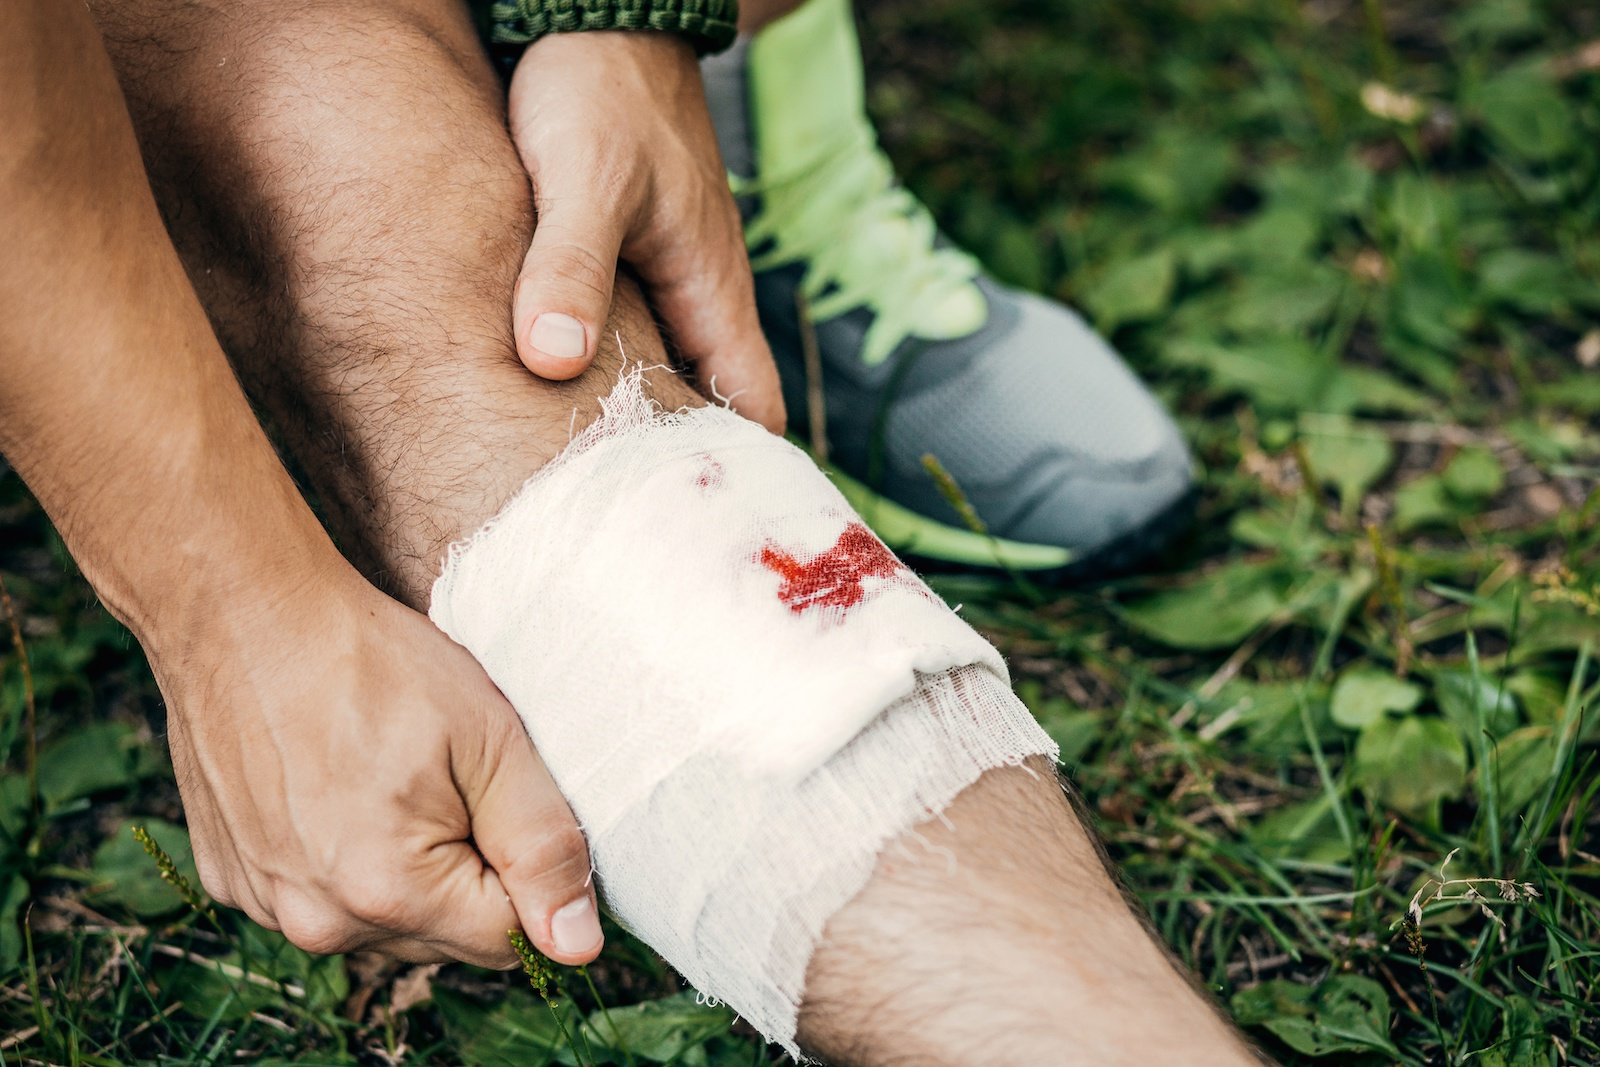 dressing a wound while hiking